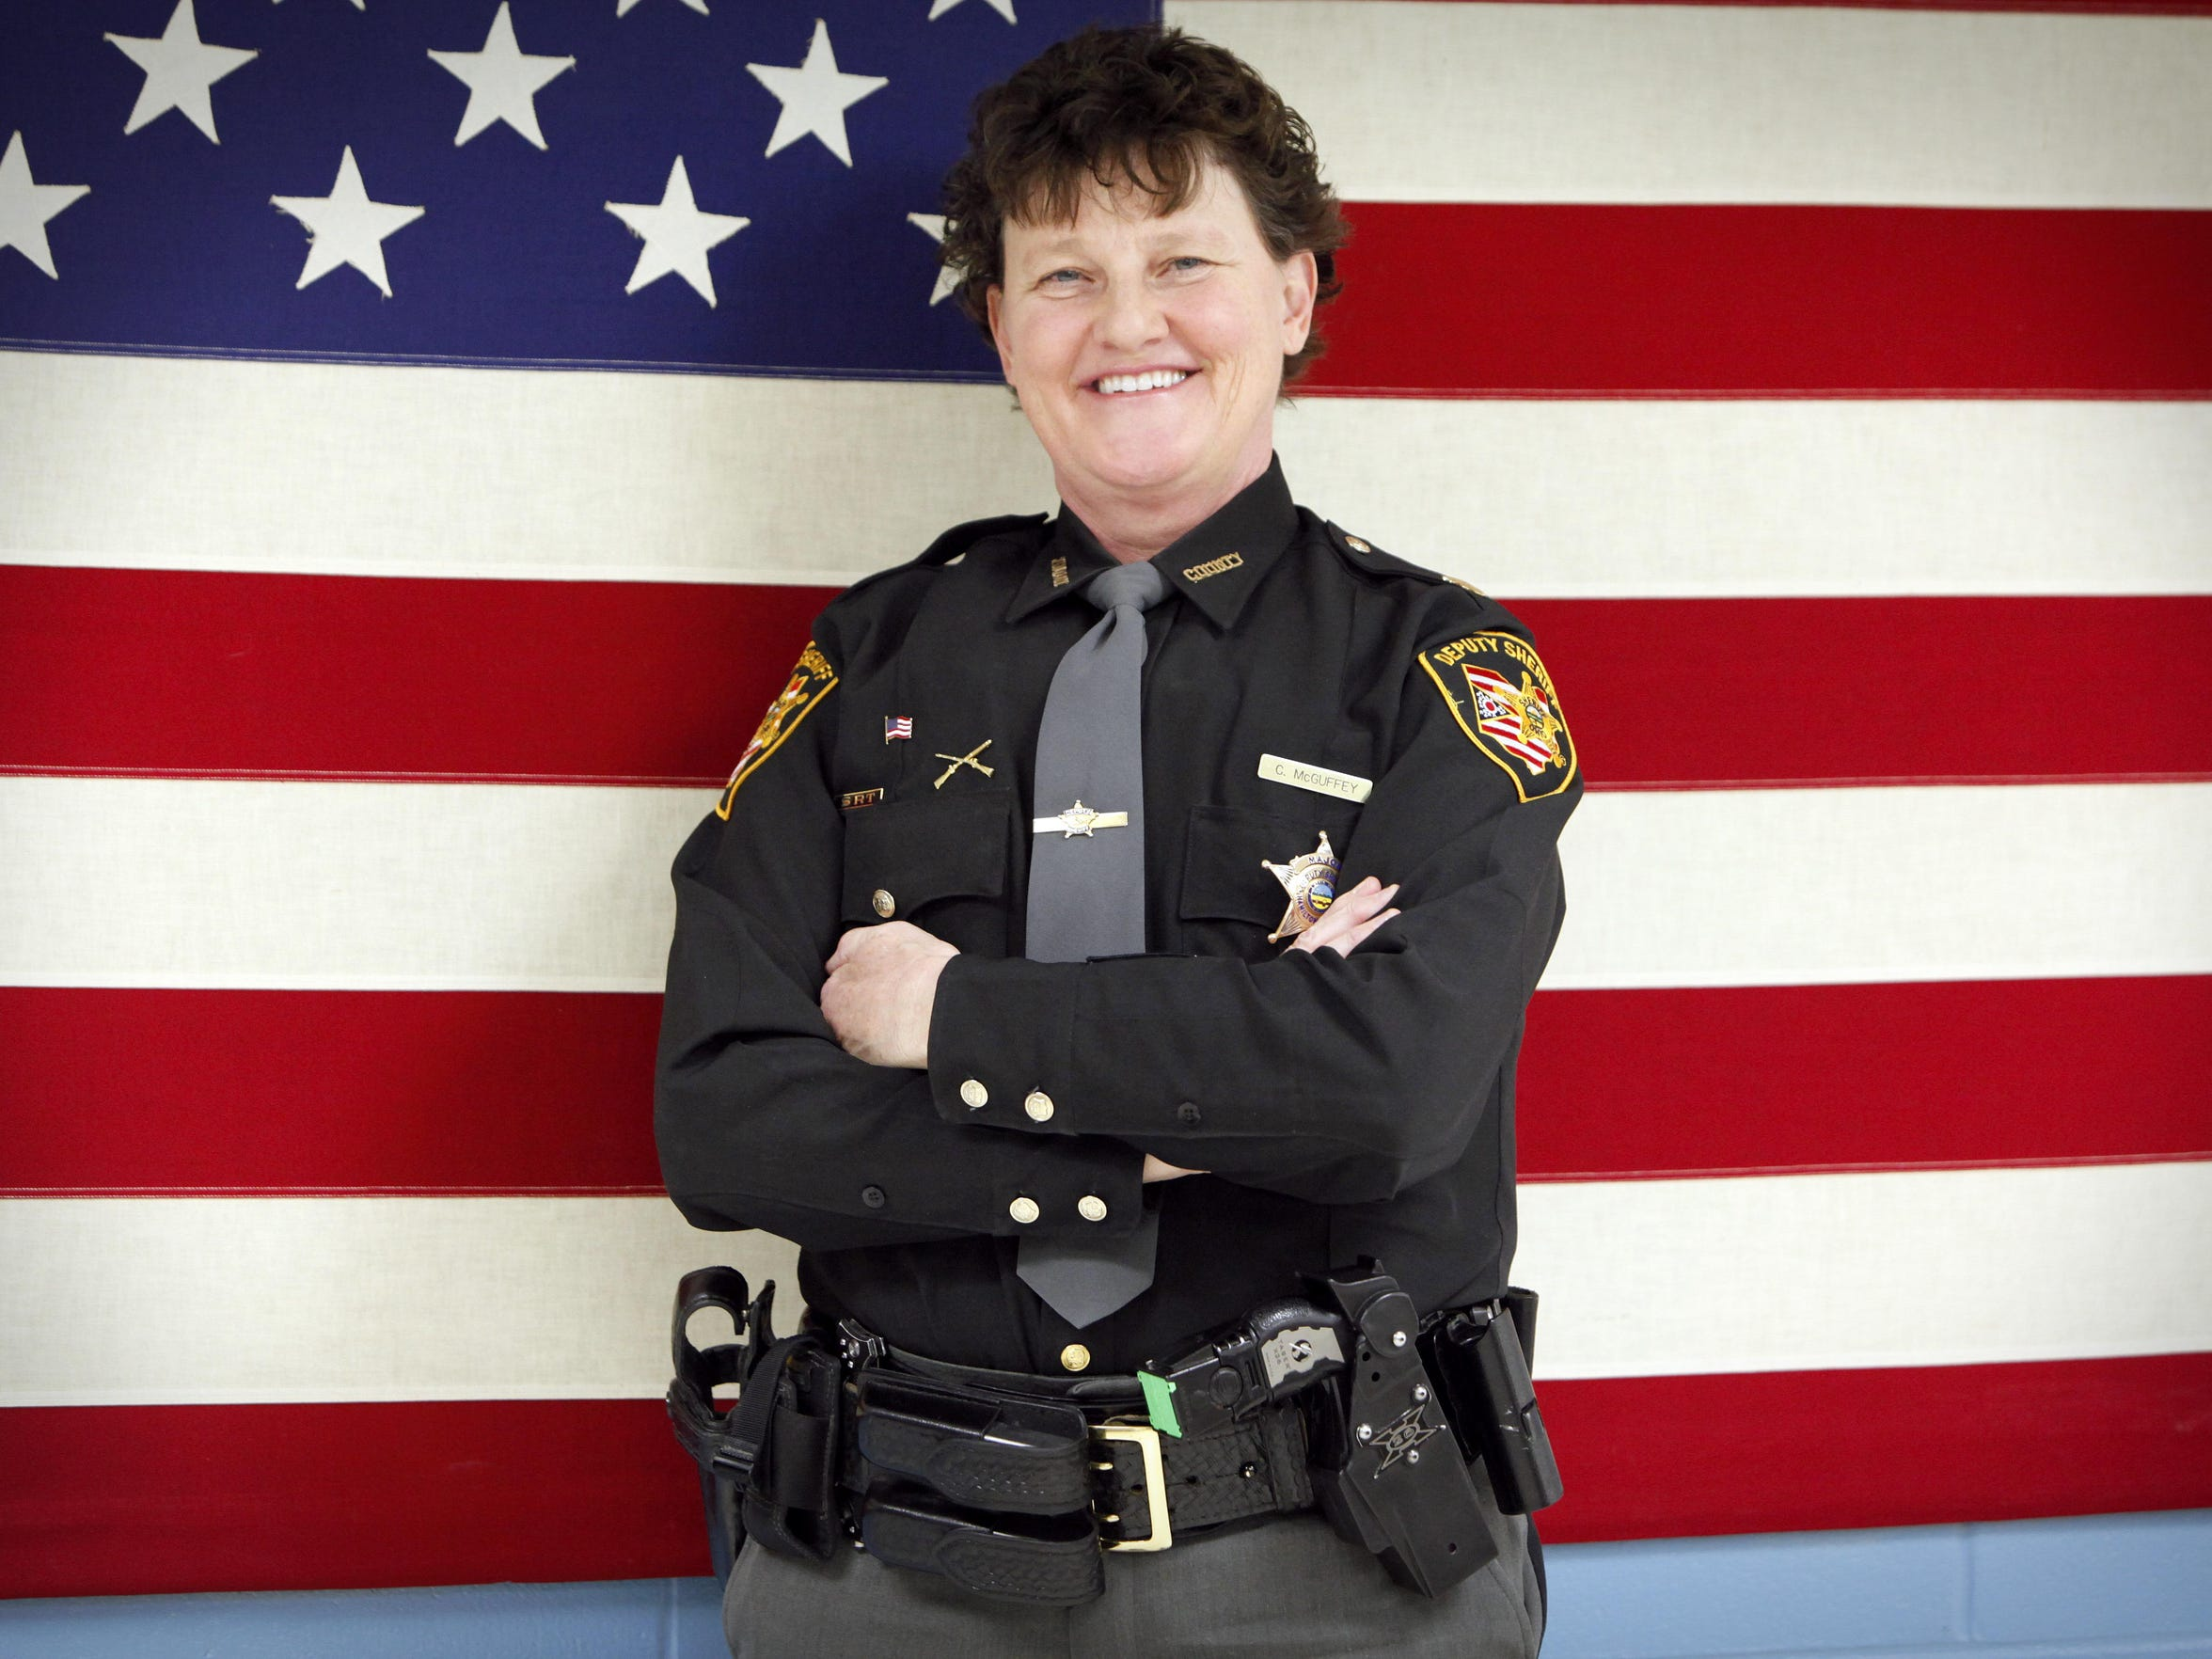 Major Charmaine McGuffey heads the corrections division